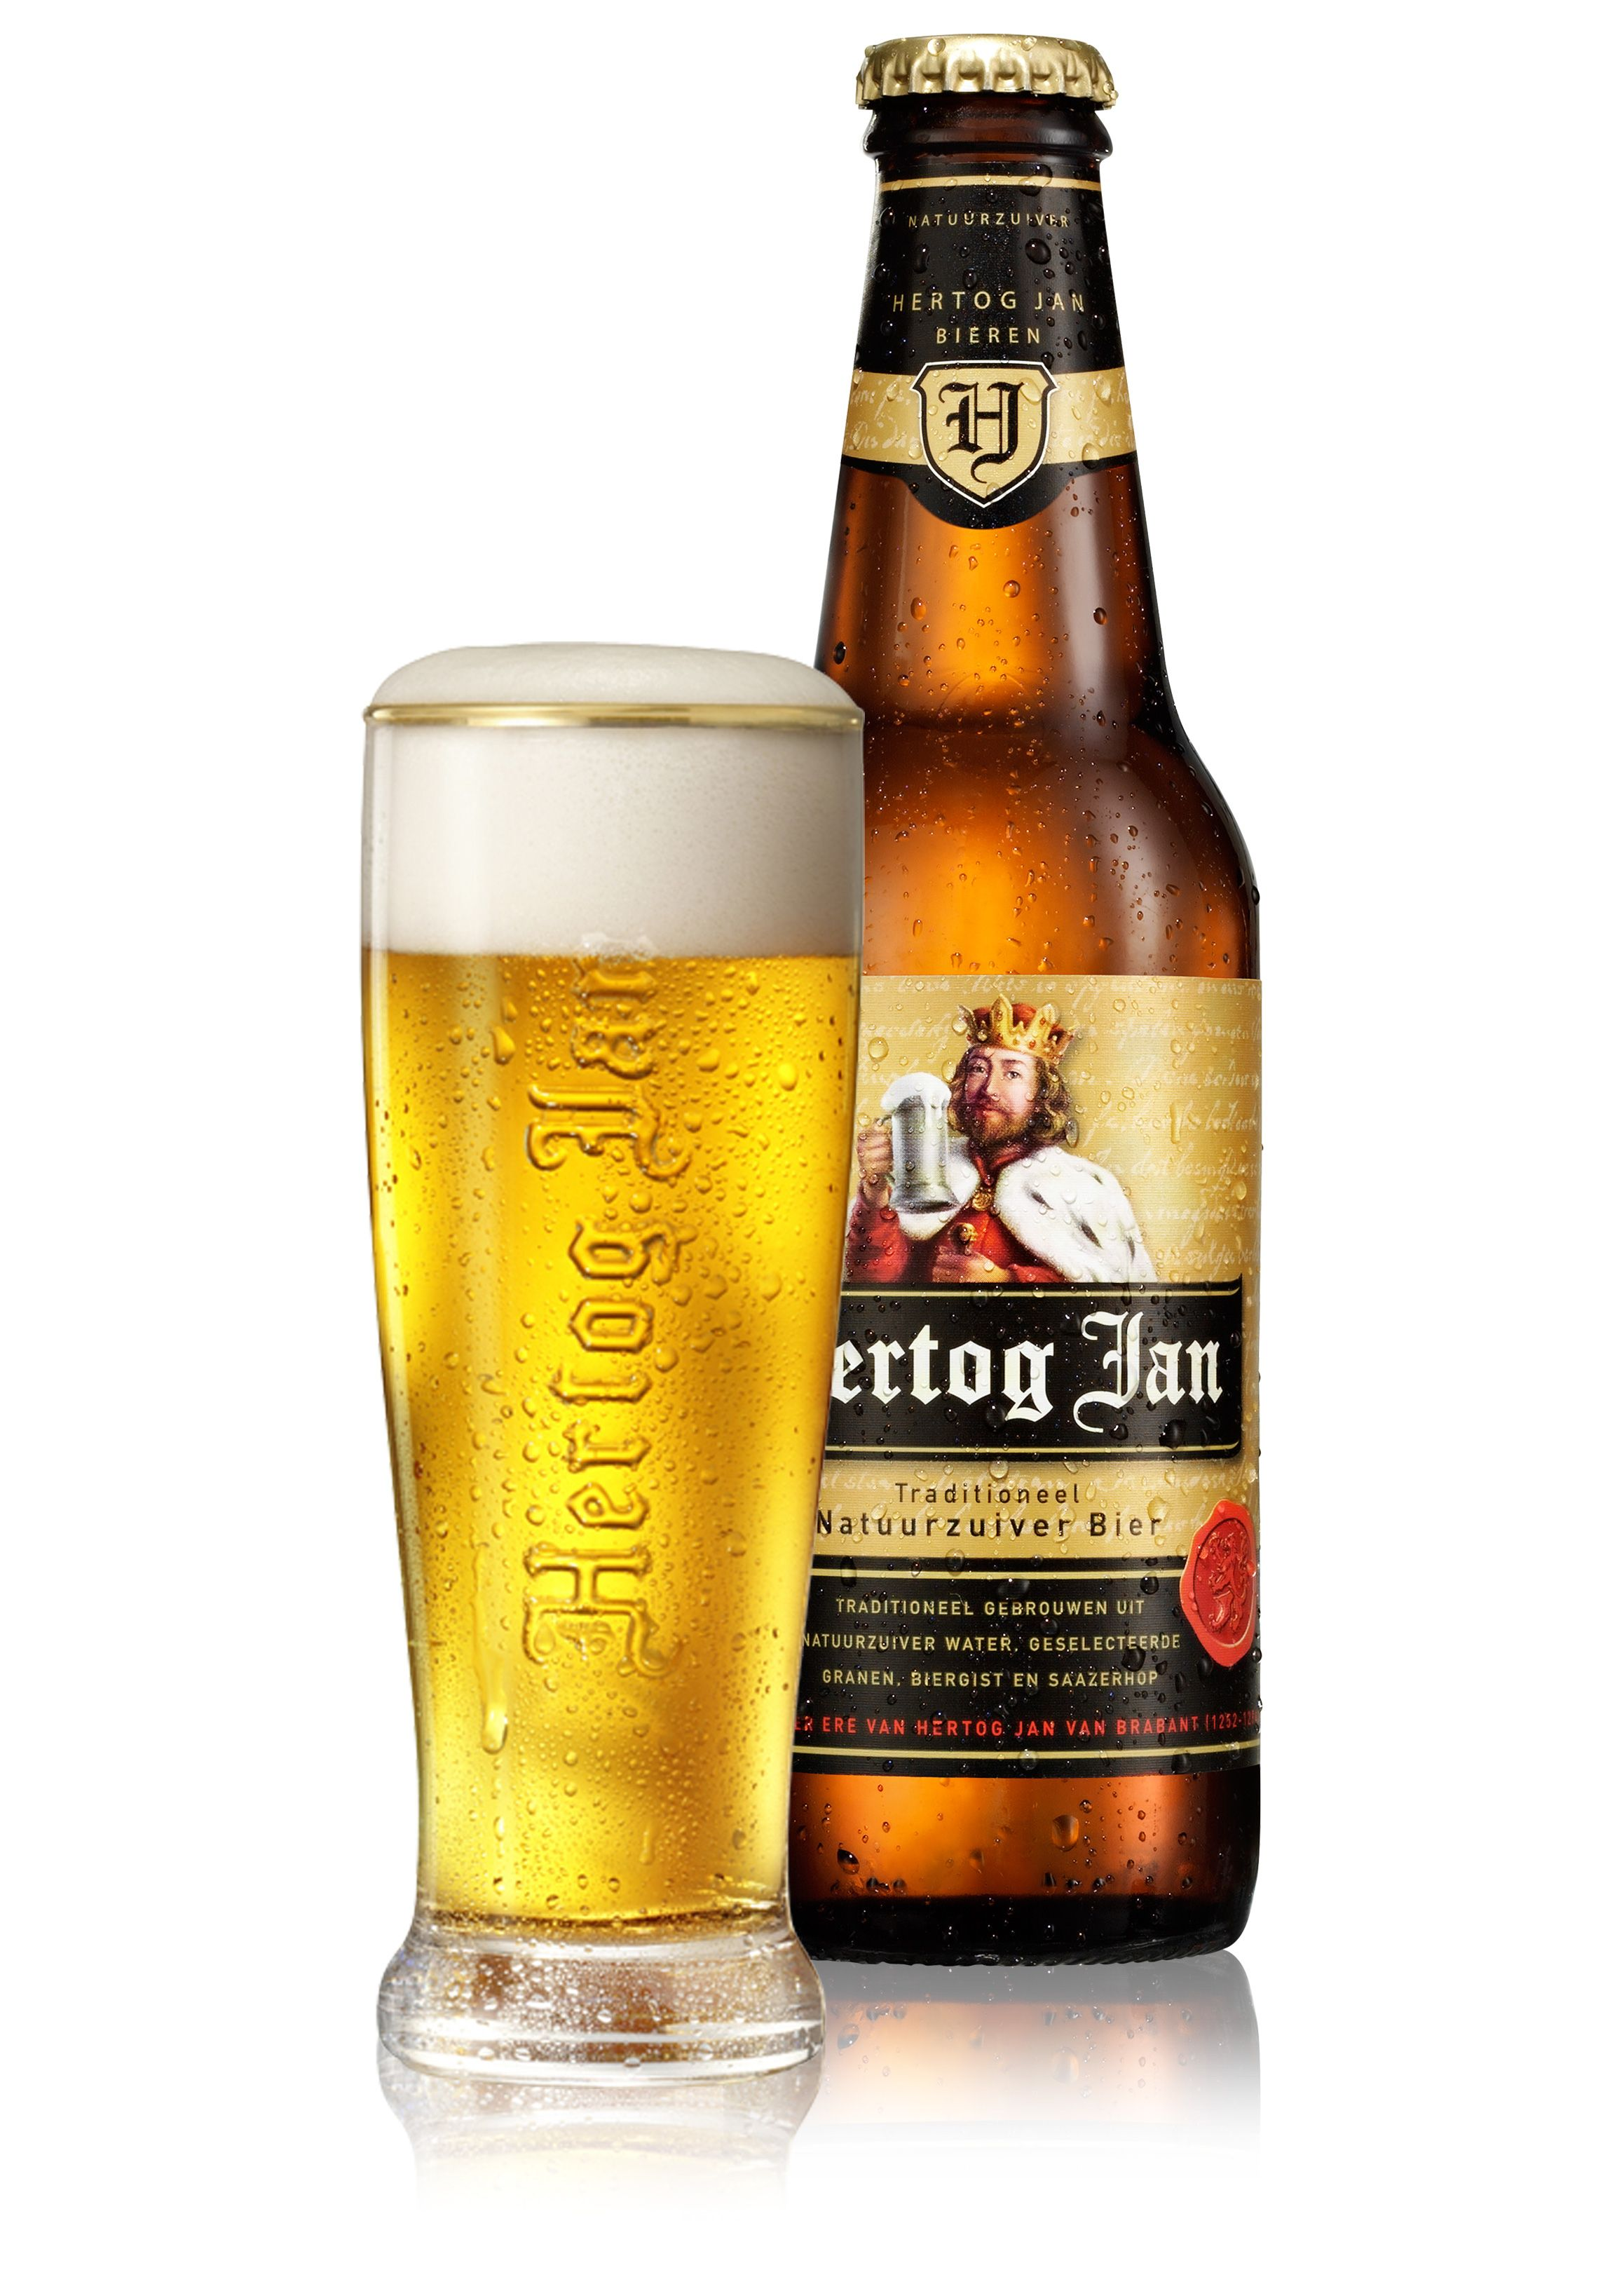 Hertog Jan Bier A Nice Cold Beer After A Tough Day My Favorite Dutch Beer